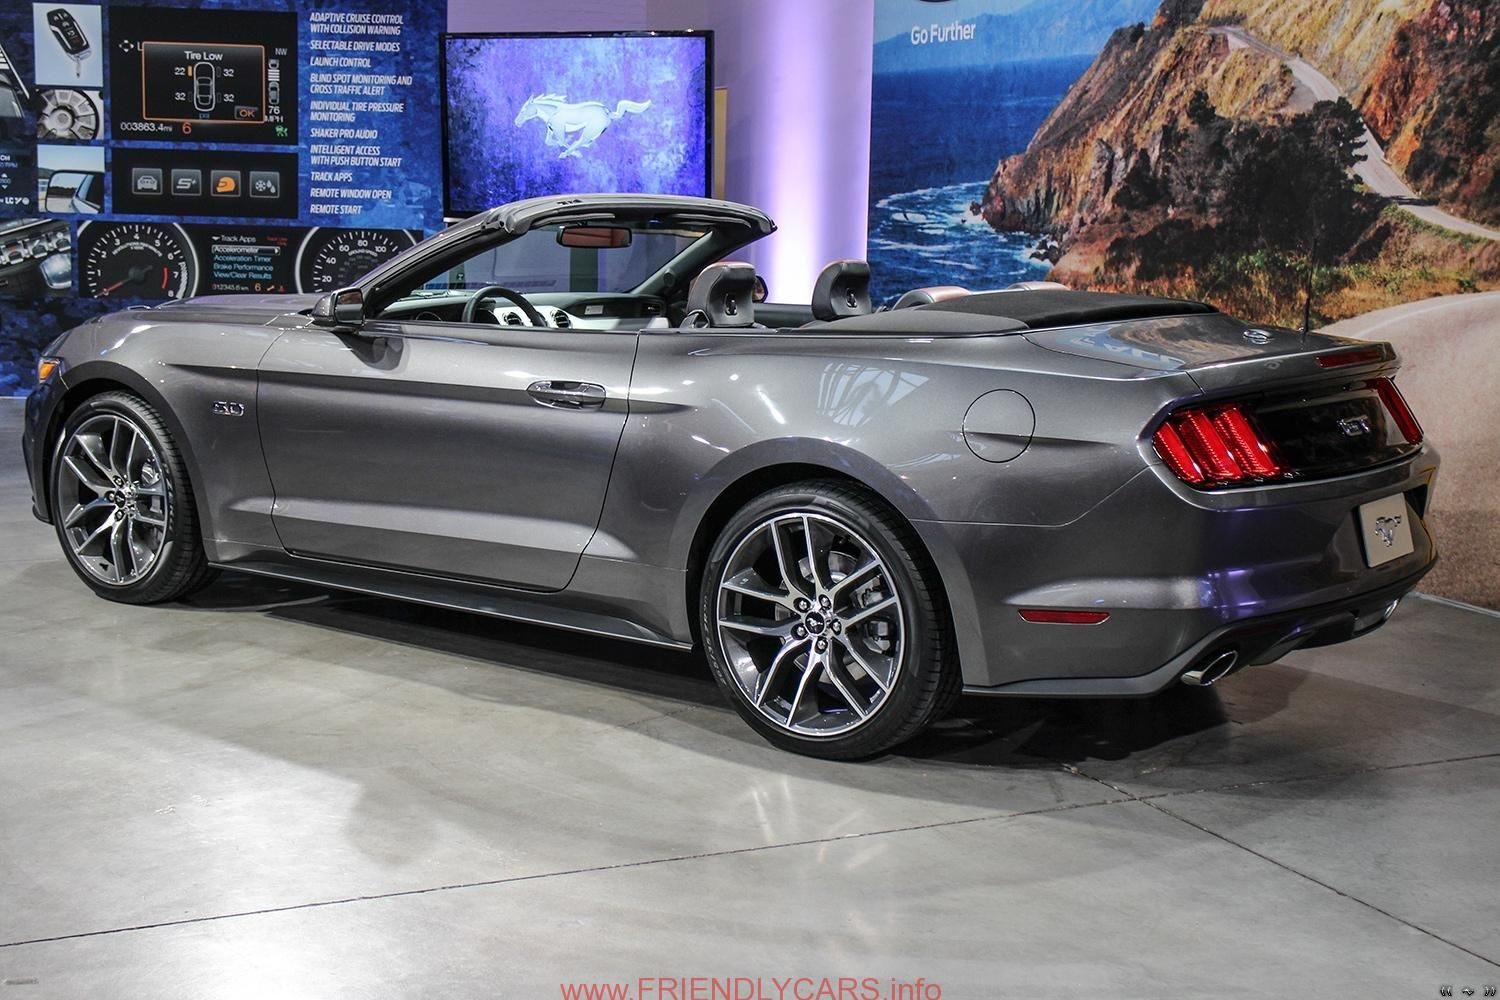 awesome ford 2015 mustang black car images hd Ford Ford Mustang Length Wallpaper Auto Car Wallpapers